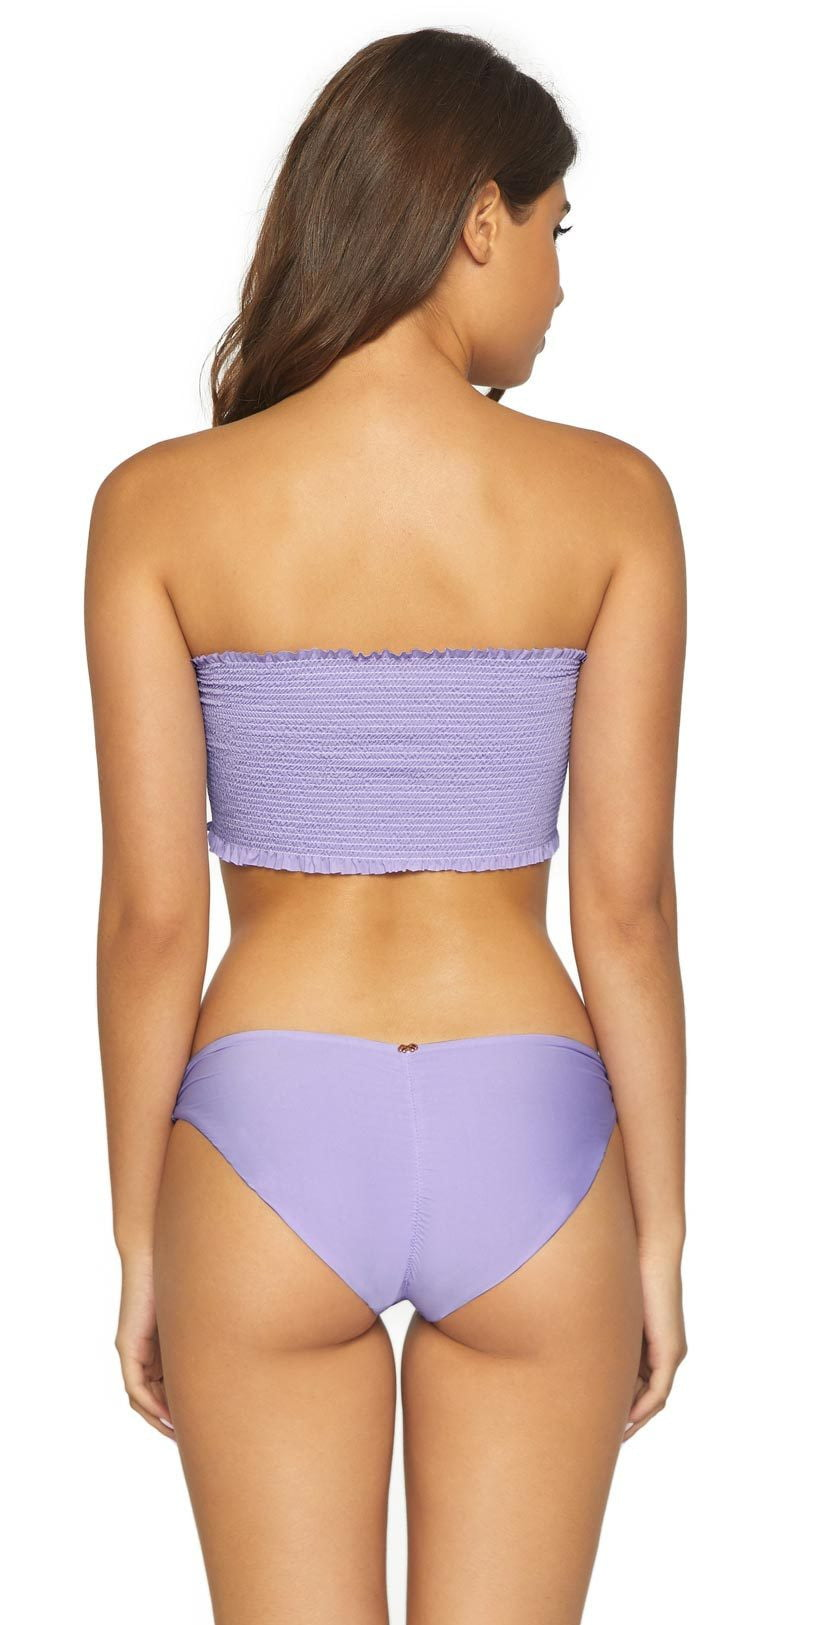 PilyQ Basic Ruched Full Bottom in Lavender LAV-211F: